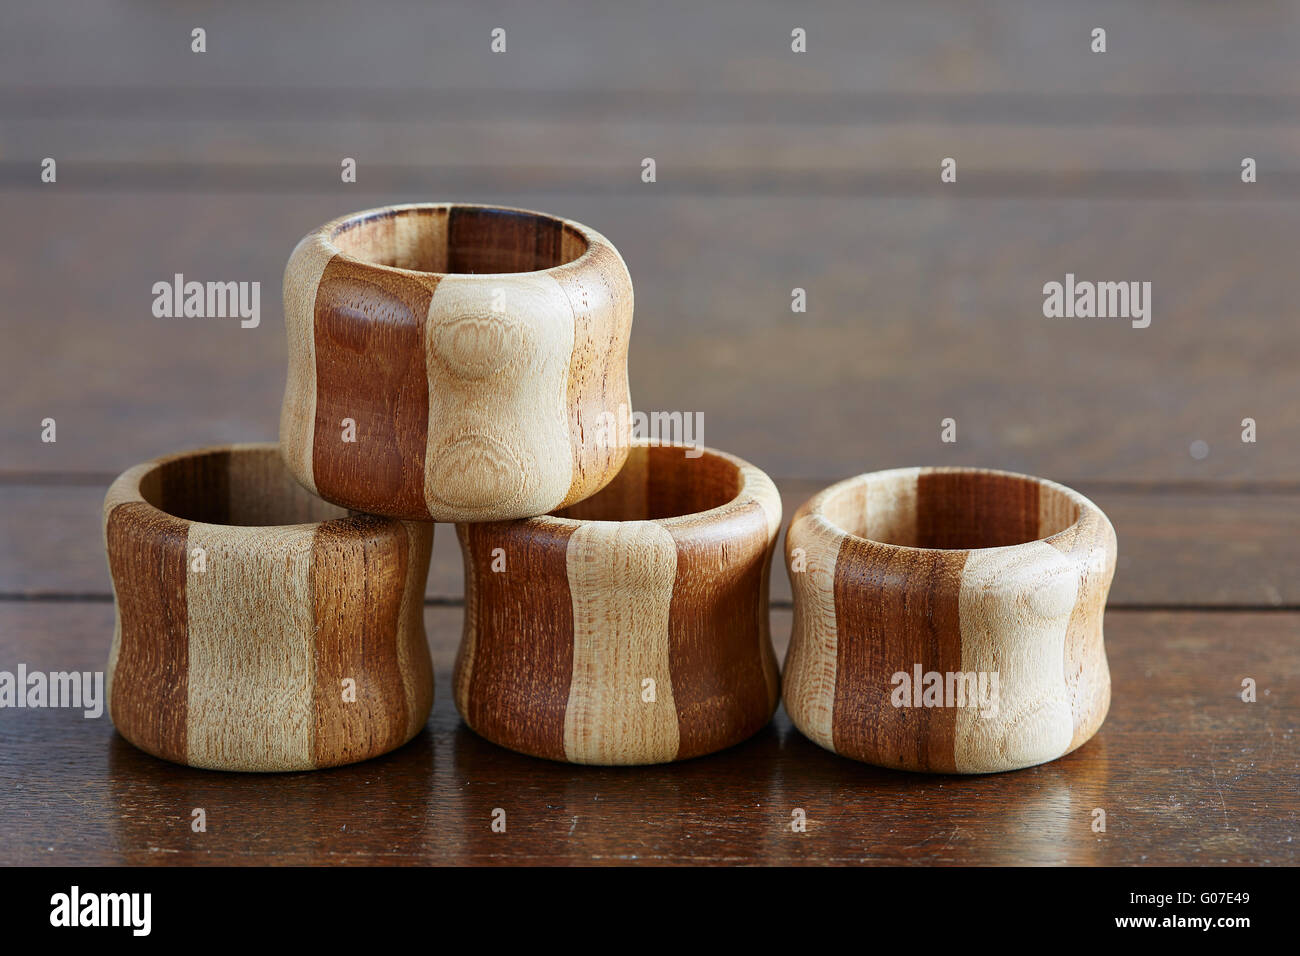 Four Wooden Napkin Rings On A Table Stock Photo Alamy